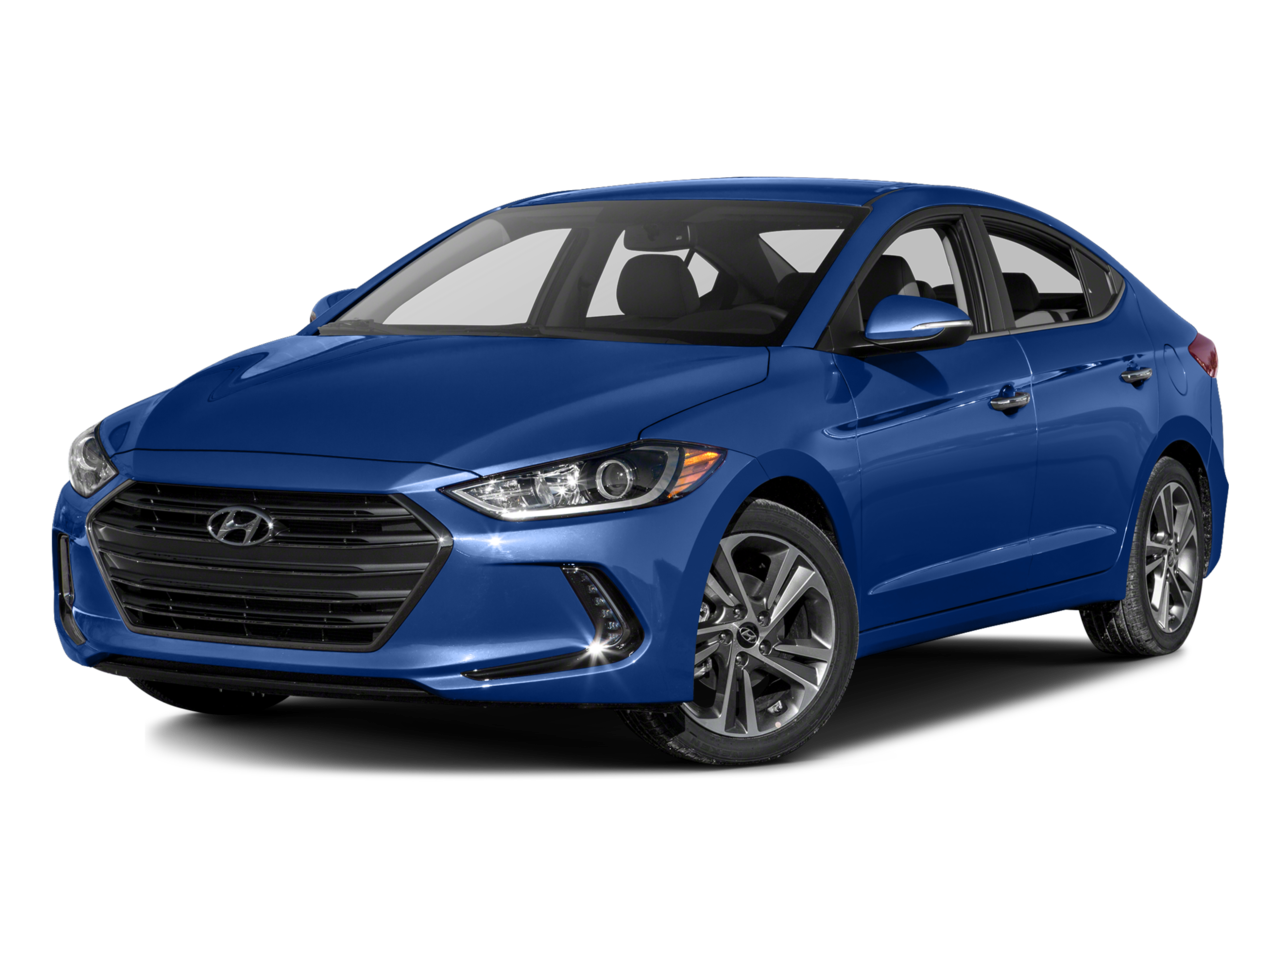 2017 Hyundai Elantra Overview in Memphis, TN | Gossett Hyundai South